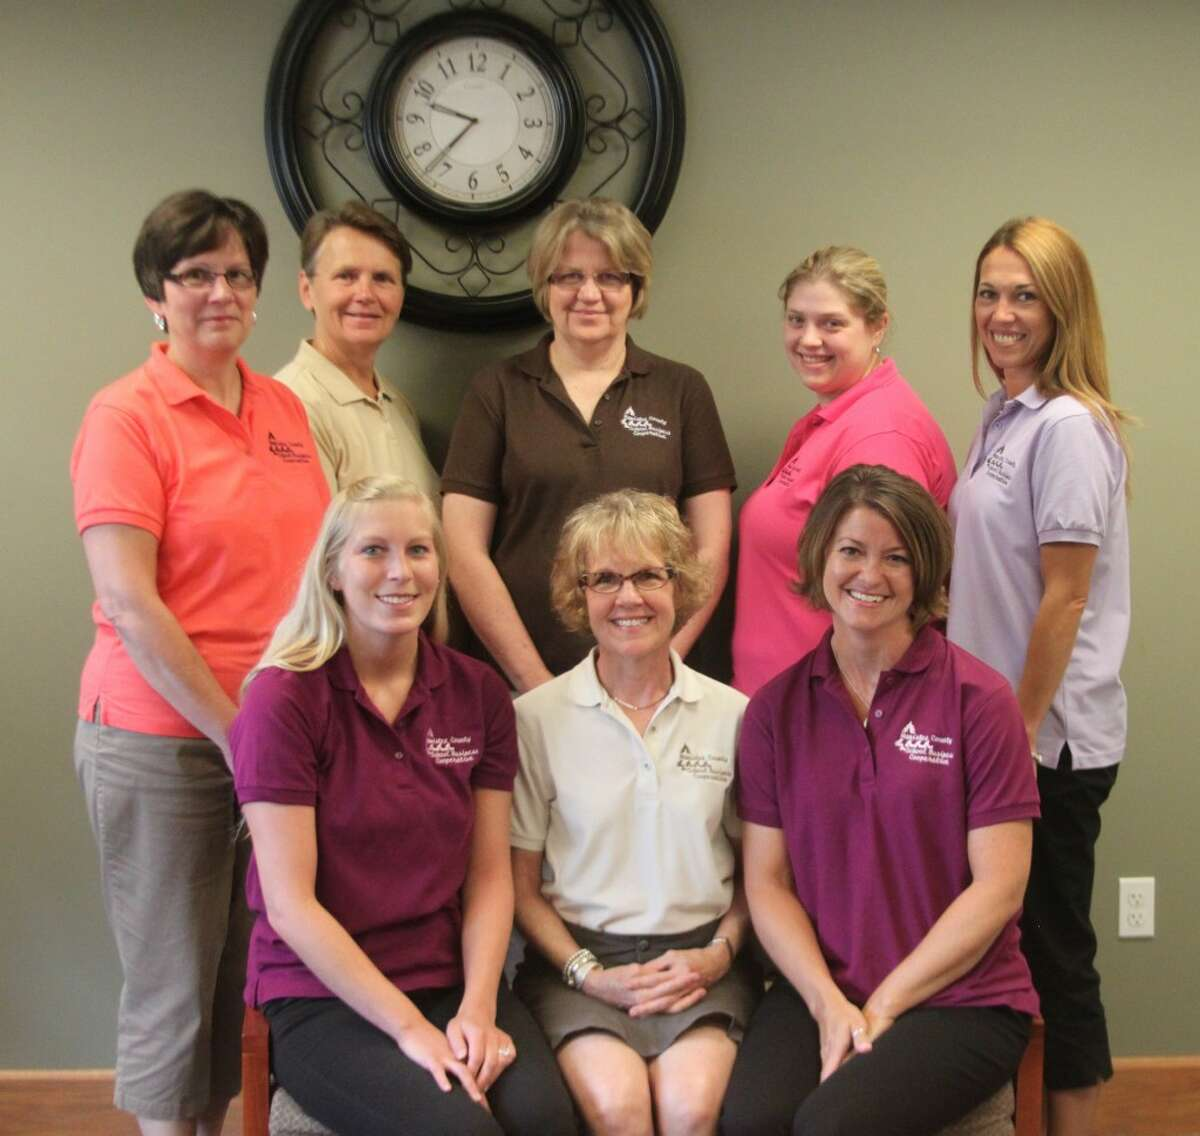 Employees at the Manistee County School Business Cooperative are sitting left to right Ashly Roy, Lucy Gagstetter and Kris Mauntler. Left to right back row:Donna Korzeniewski, Cheryl Miller, Lorraine Lynch, Danielle Kurtz and Leslie Acton. The cooperative provides business services to area school districts. Missing from the photo is Patty Labadie.